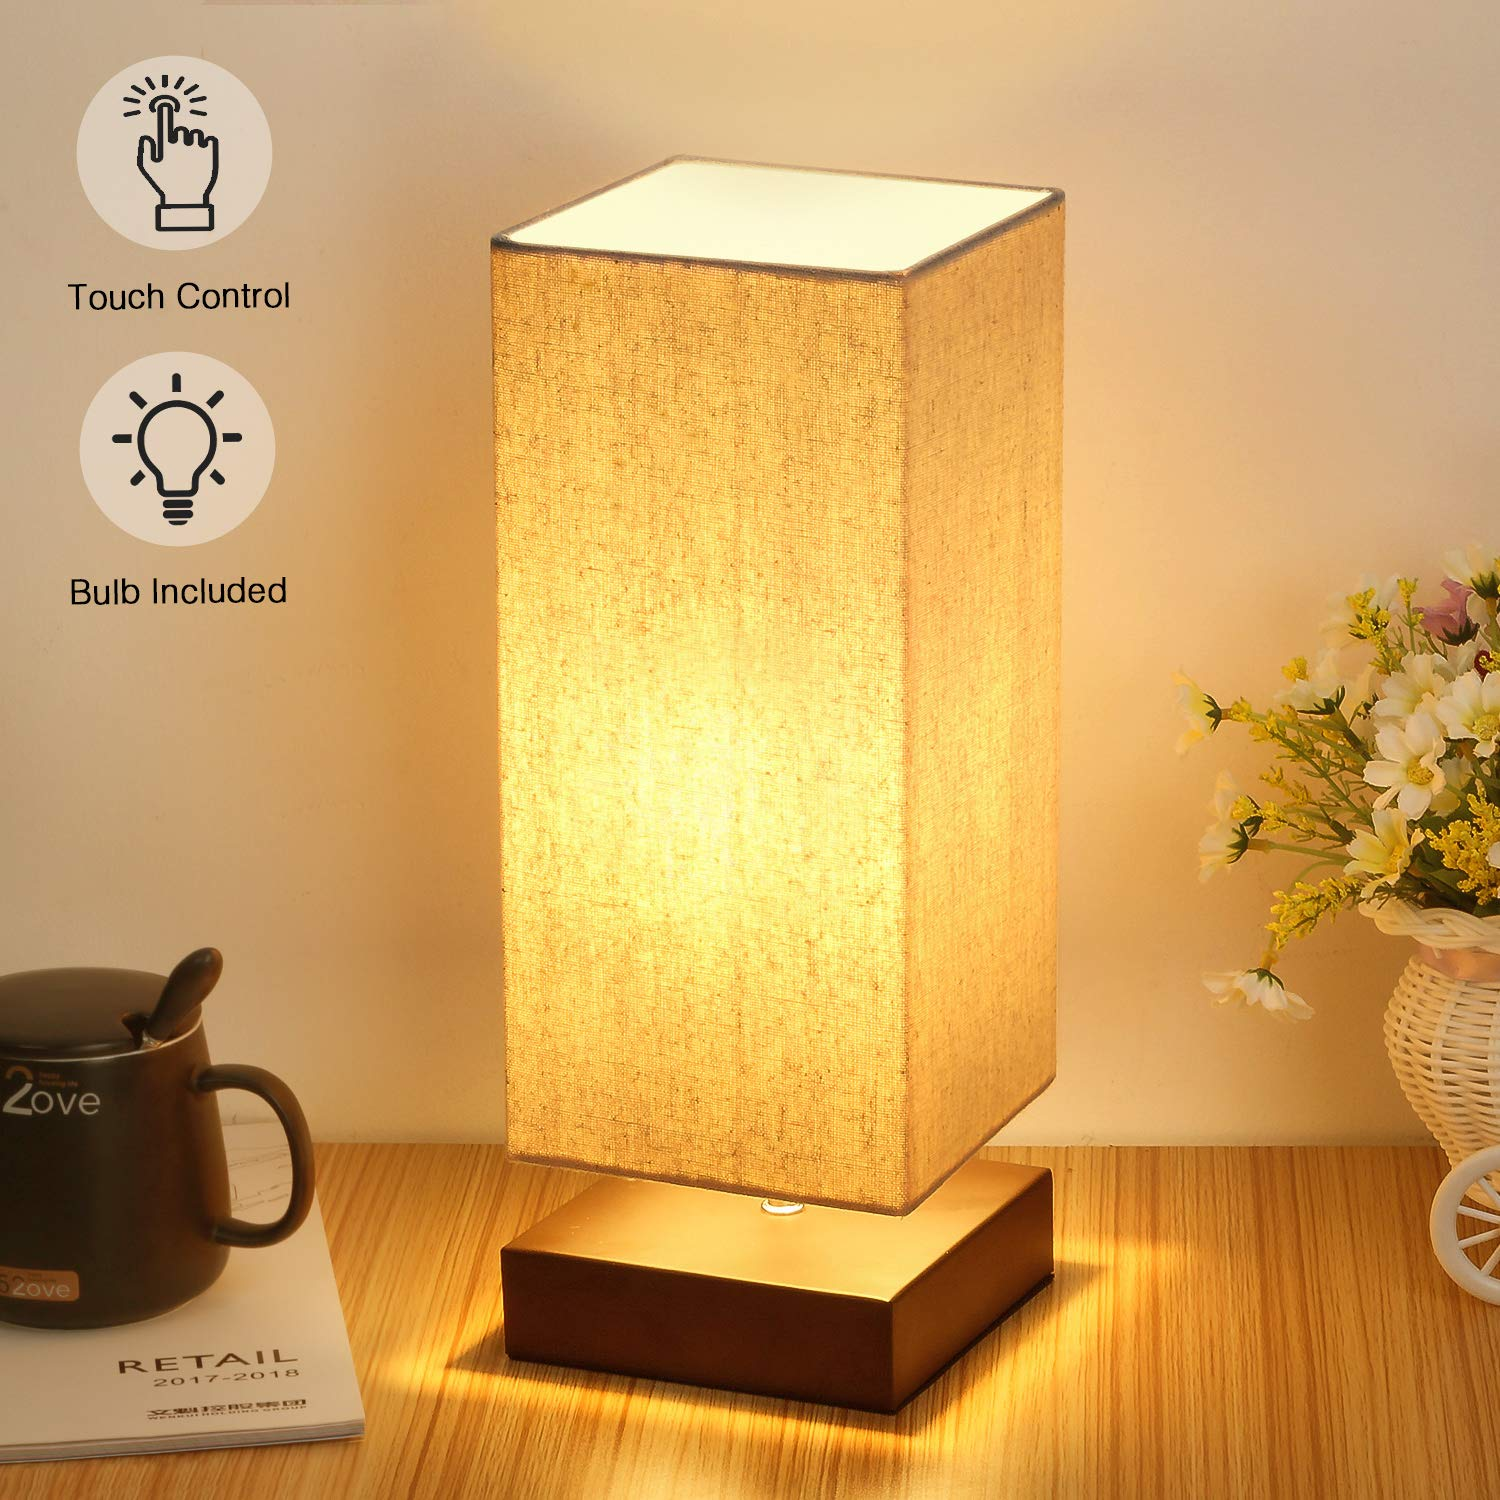 Touch Control Table Lamp Bedside 3 Way Dimmable Touch Desk Lamp Modern  Nightstand Lamp with Square Fabric Lamp Shade Simple Night Light for  Bedroom ...